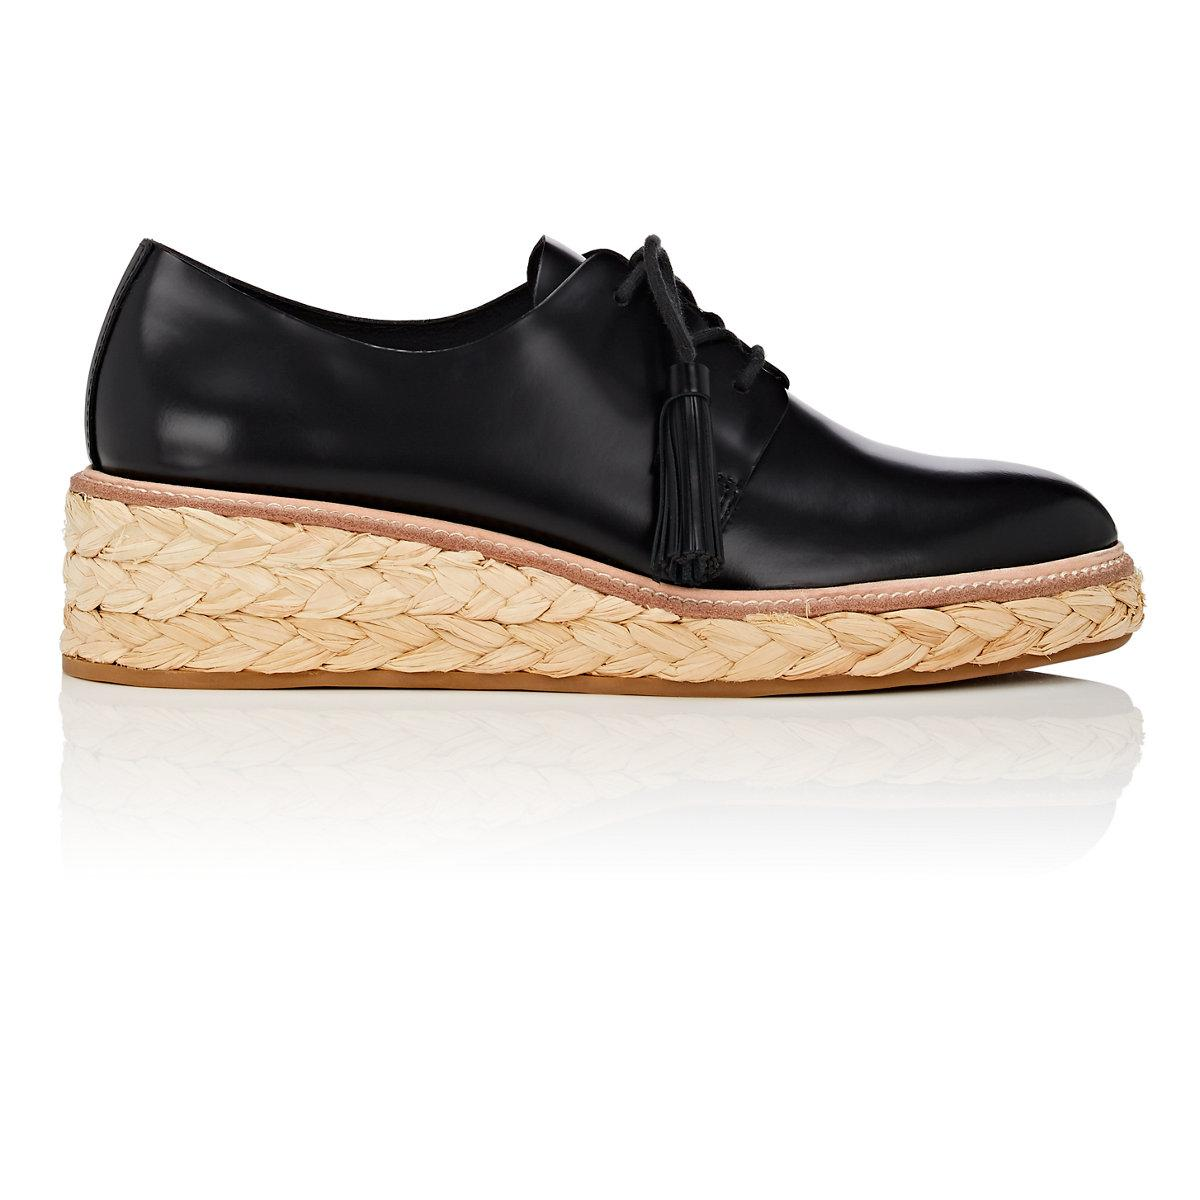 d5db4218c5a Loeffler Randall Black Callie Spazzolato Leather Espadrille Oxfords